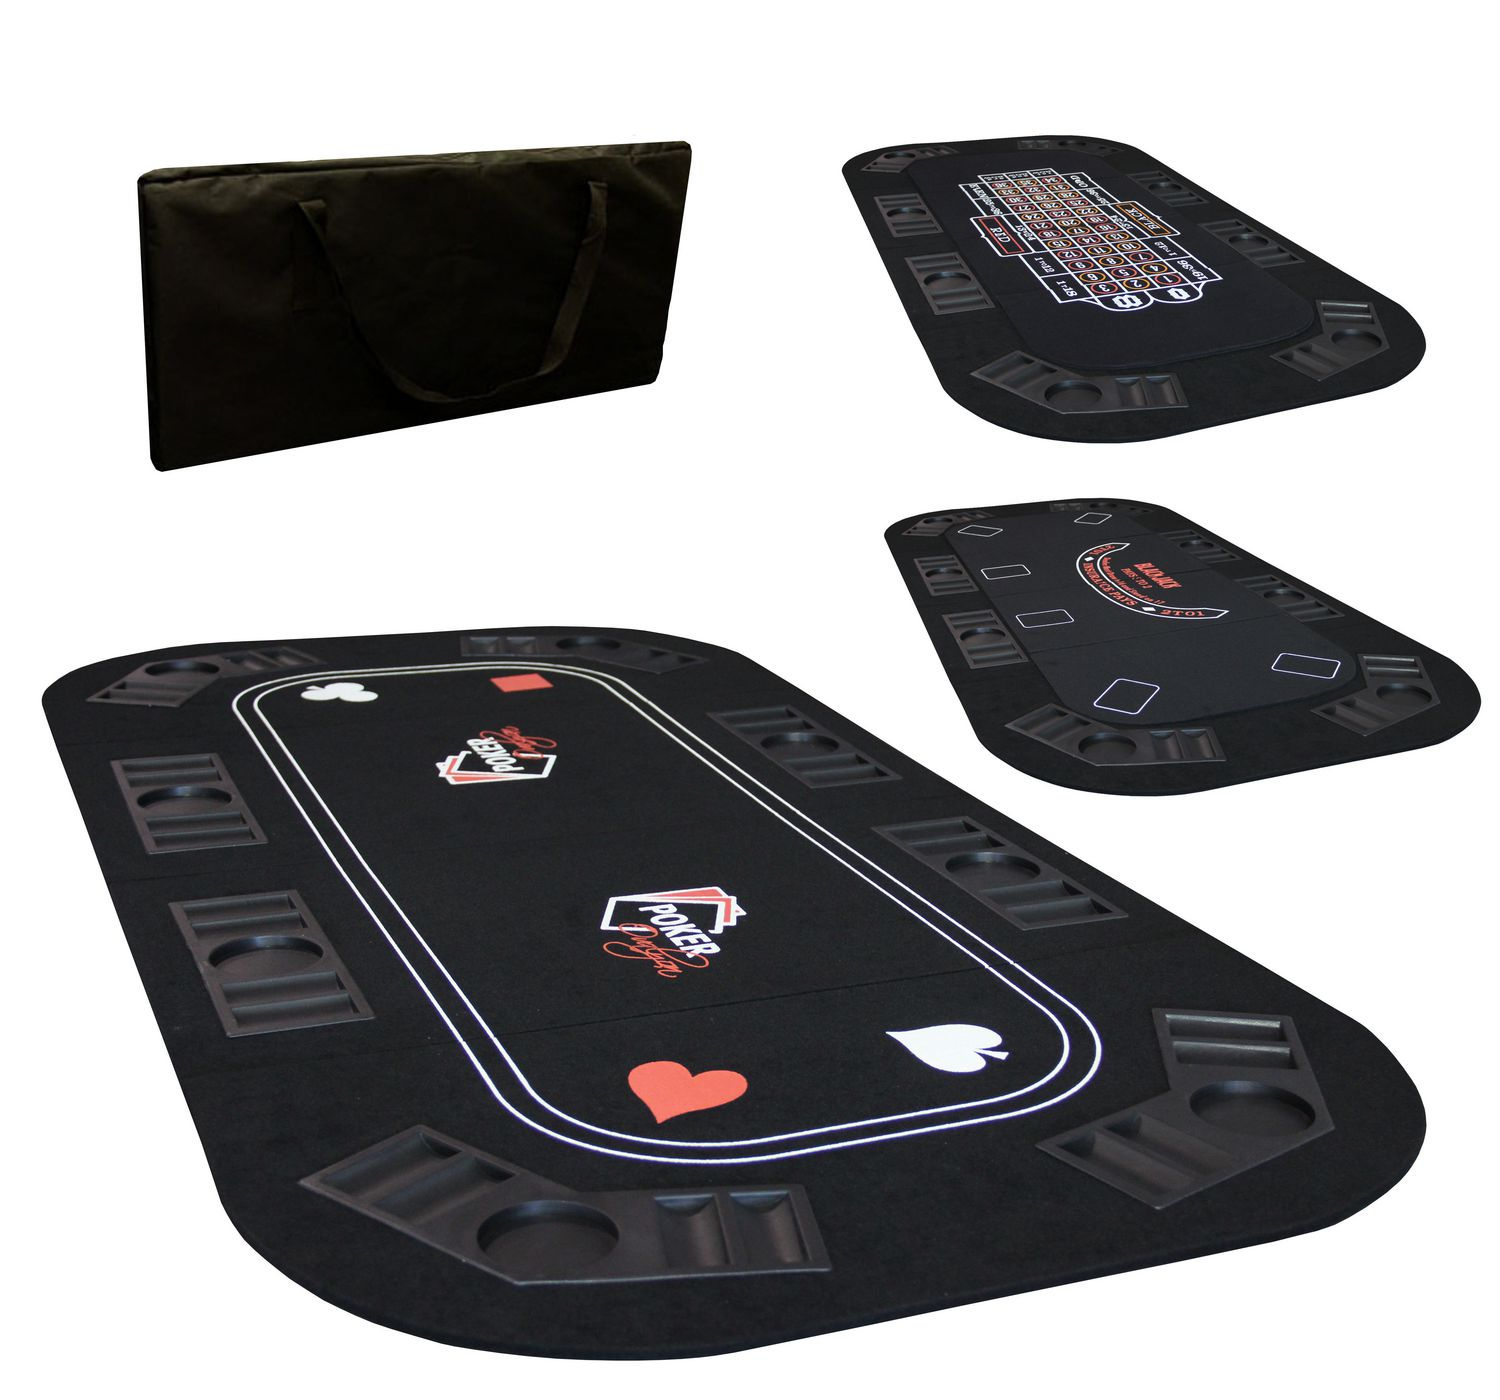 Ovalyon 3 In 1 Texas Hold'em Poker, Roulette And Black Jack